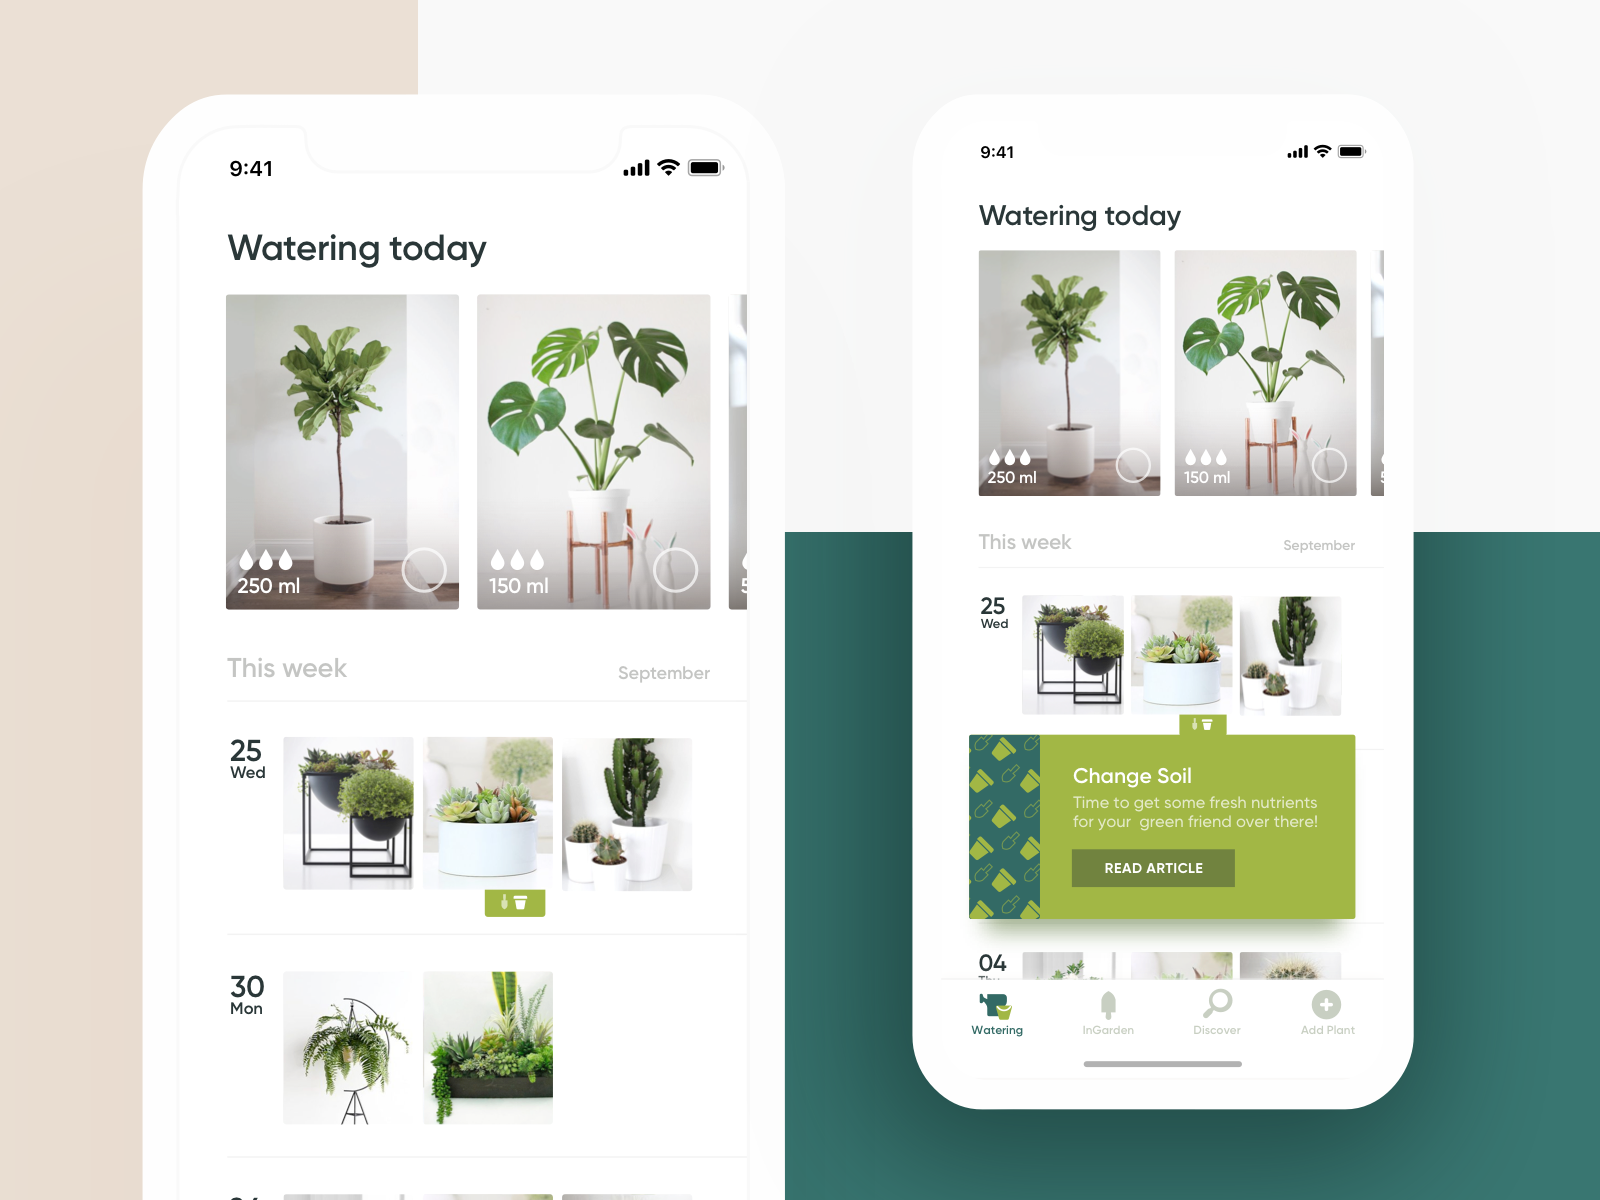 727c8458491adbc83ec8510c9b83a875 - Best Free Gardening Apps For Android